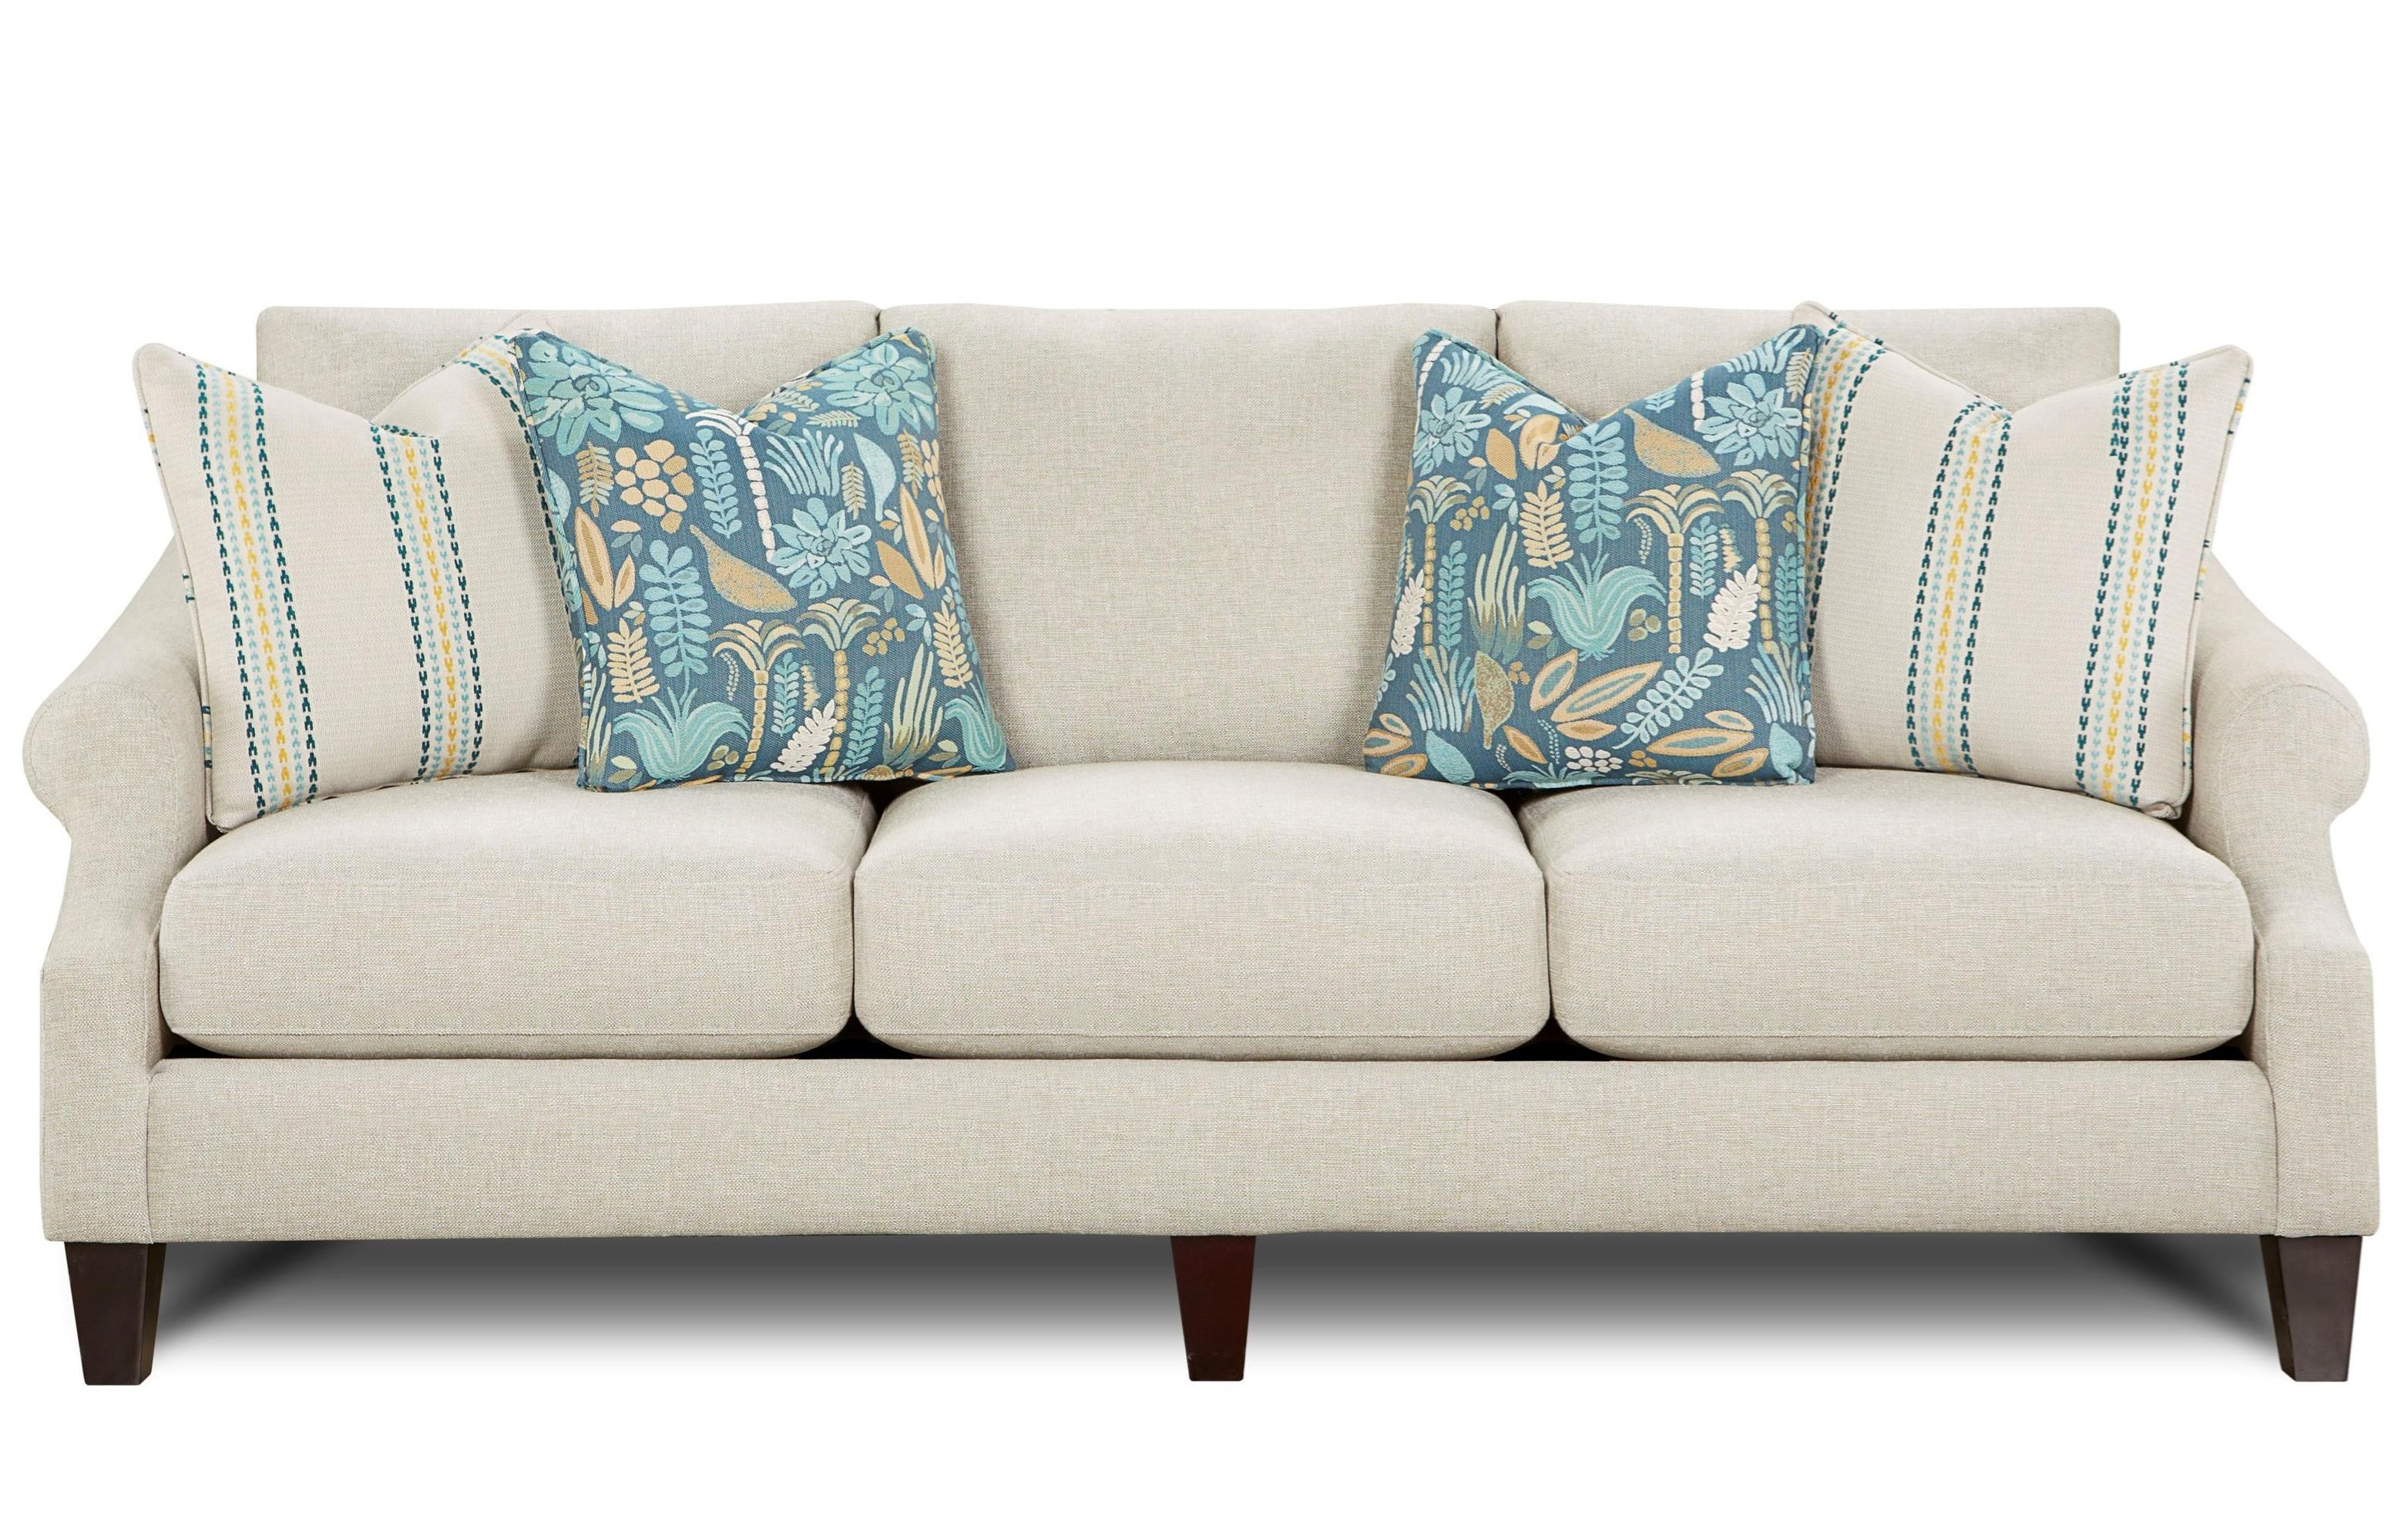 Fusion Furniture 3200 Sofa - Item Number: 3200Drusky Reed